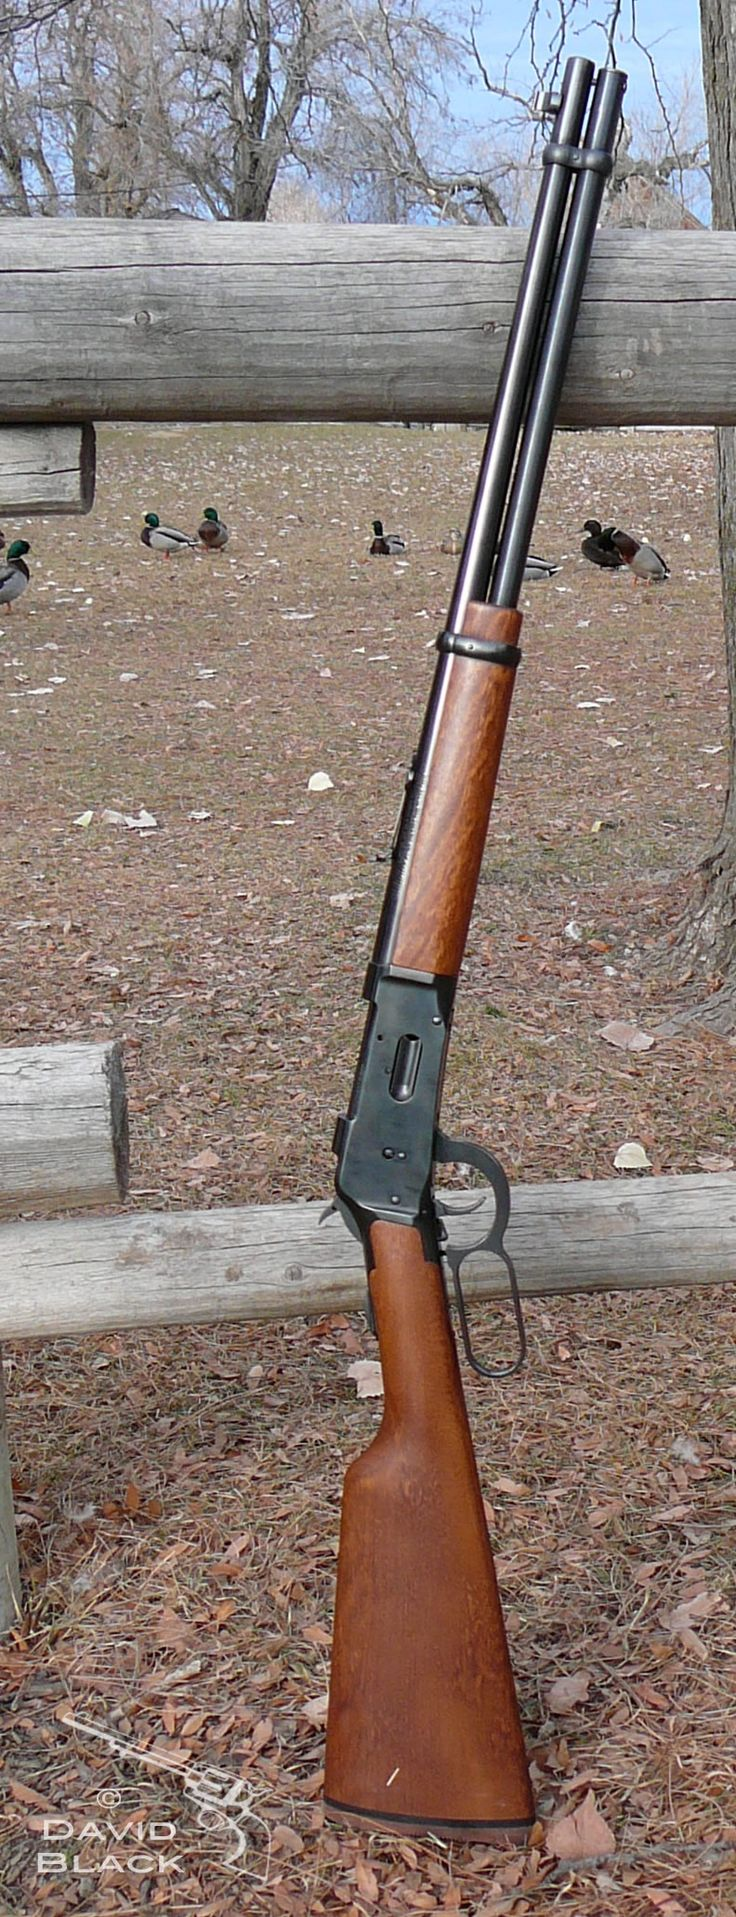 Mossberg 464 Lever action rifle. Patterned after the Winchester 1894 lever action rifle. Great cowboy gun.